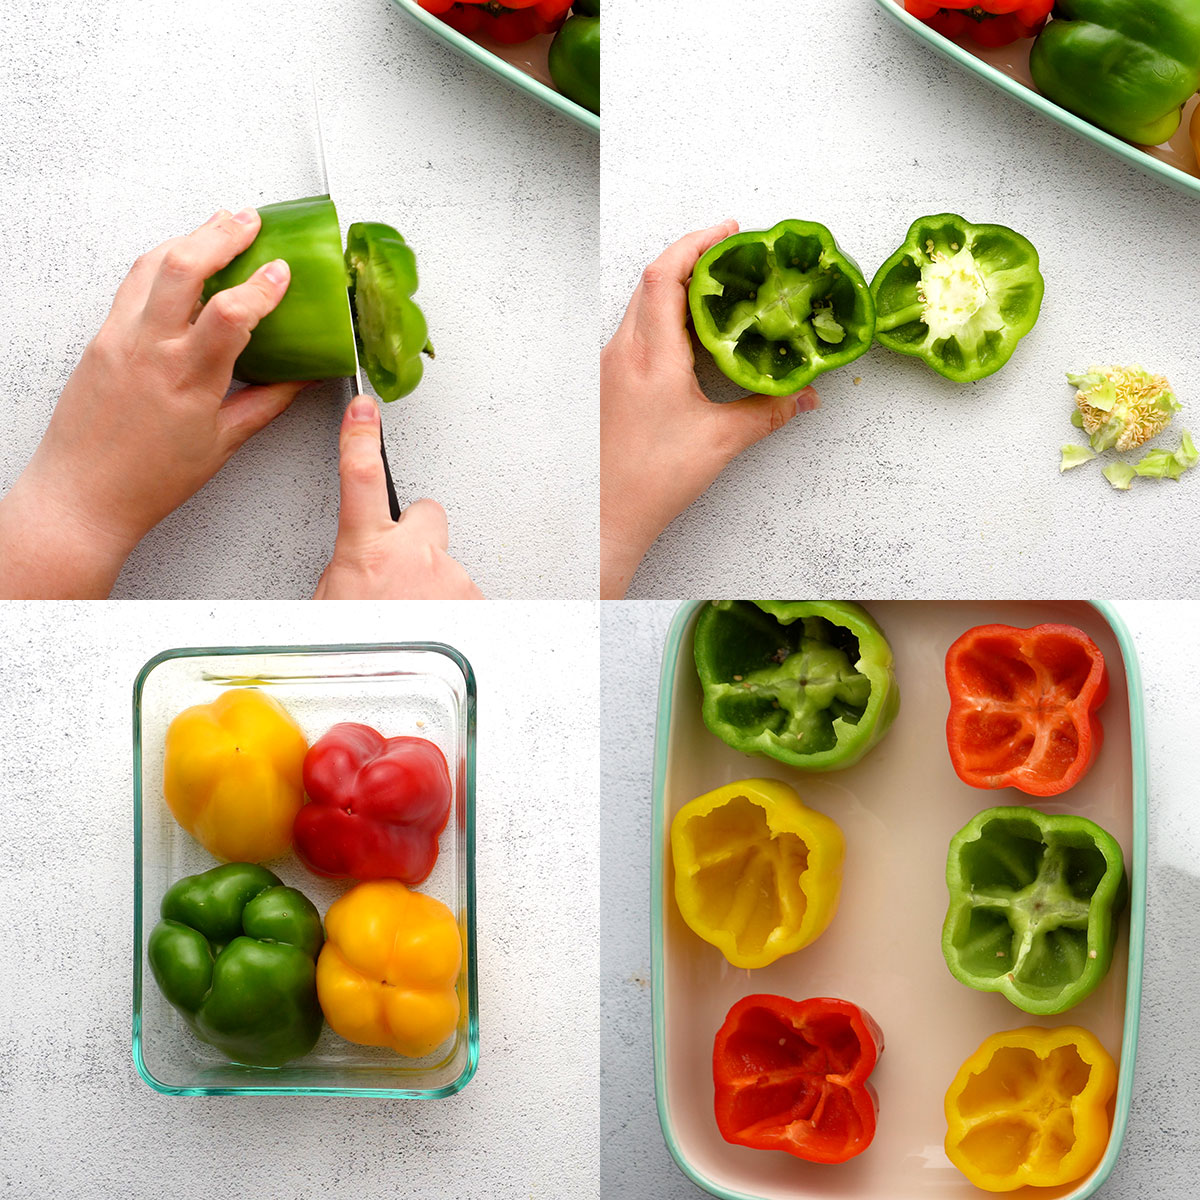 Step by step instruction of cutting tops off of bell peppers, scooping out seeds, pre-cooking in dish, and placing in casserole dish to fill and bake.